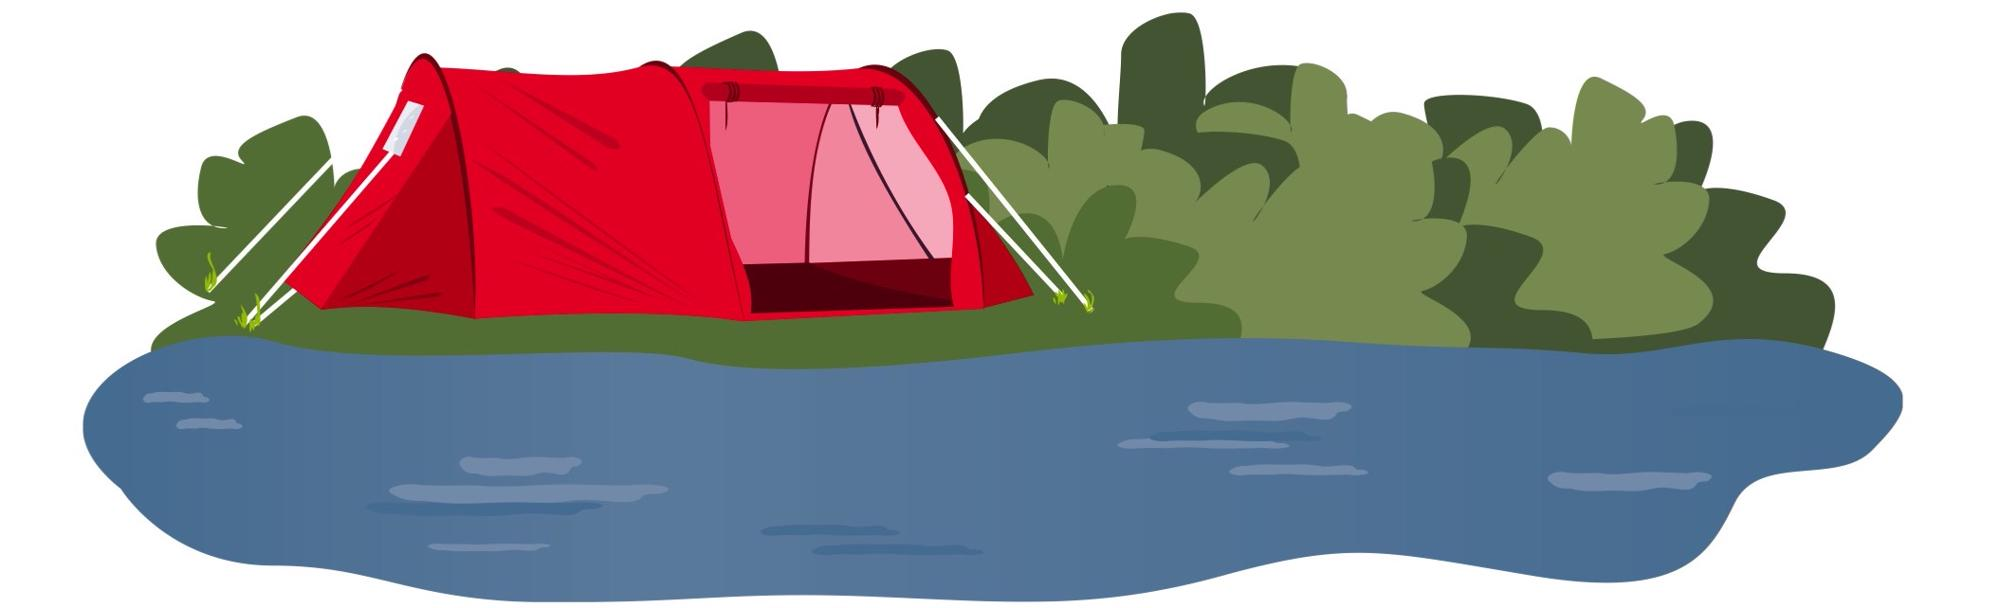 Family tent illustration